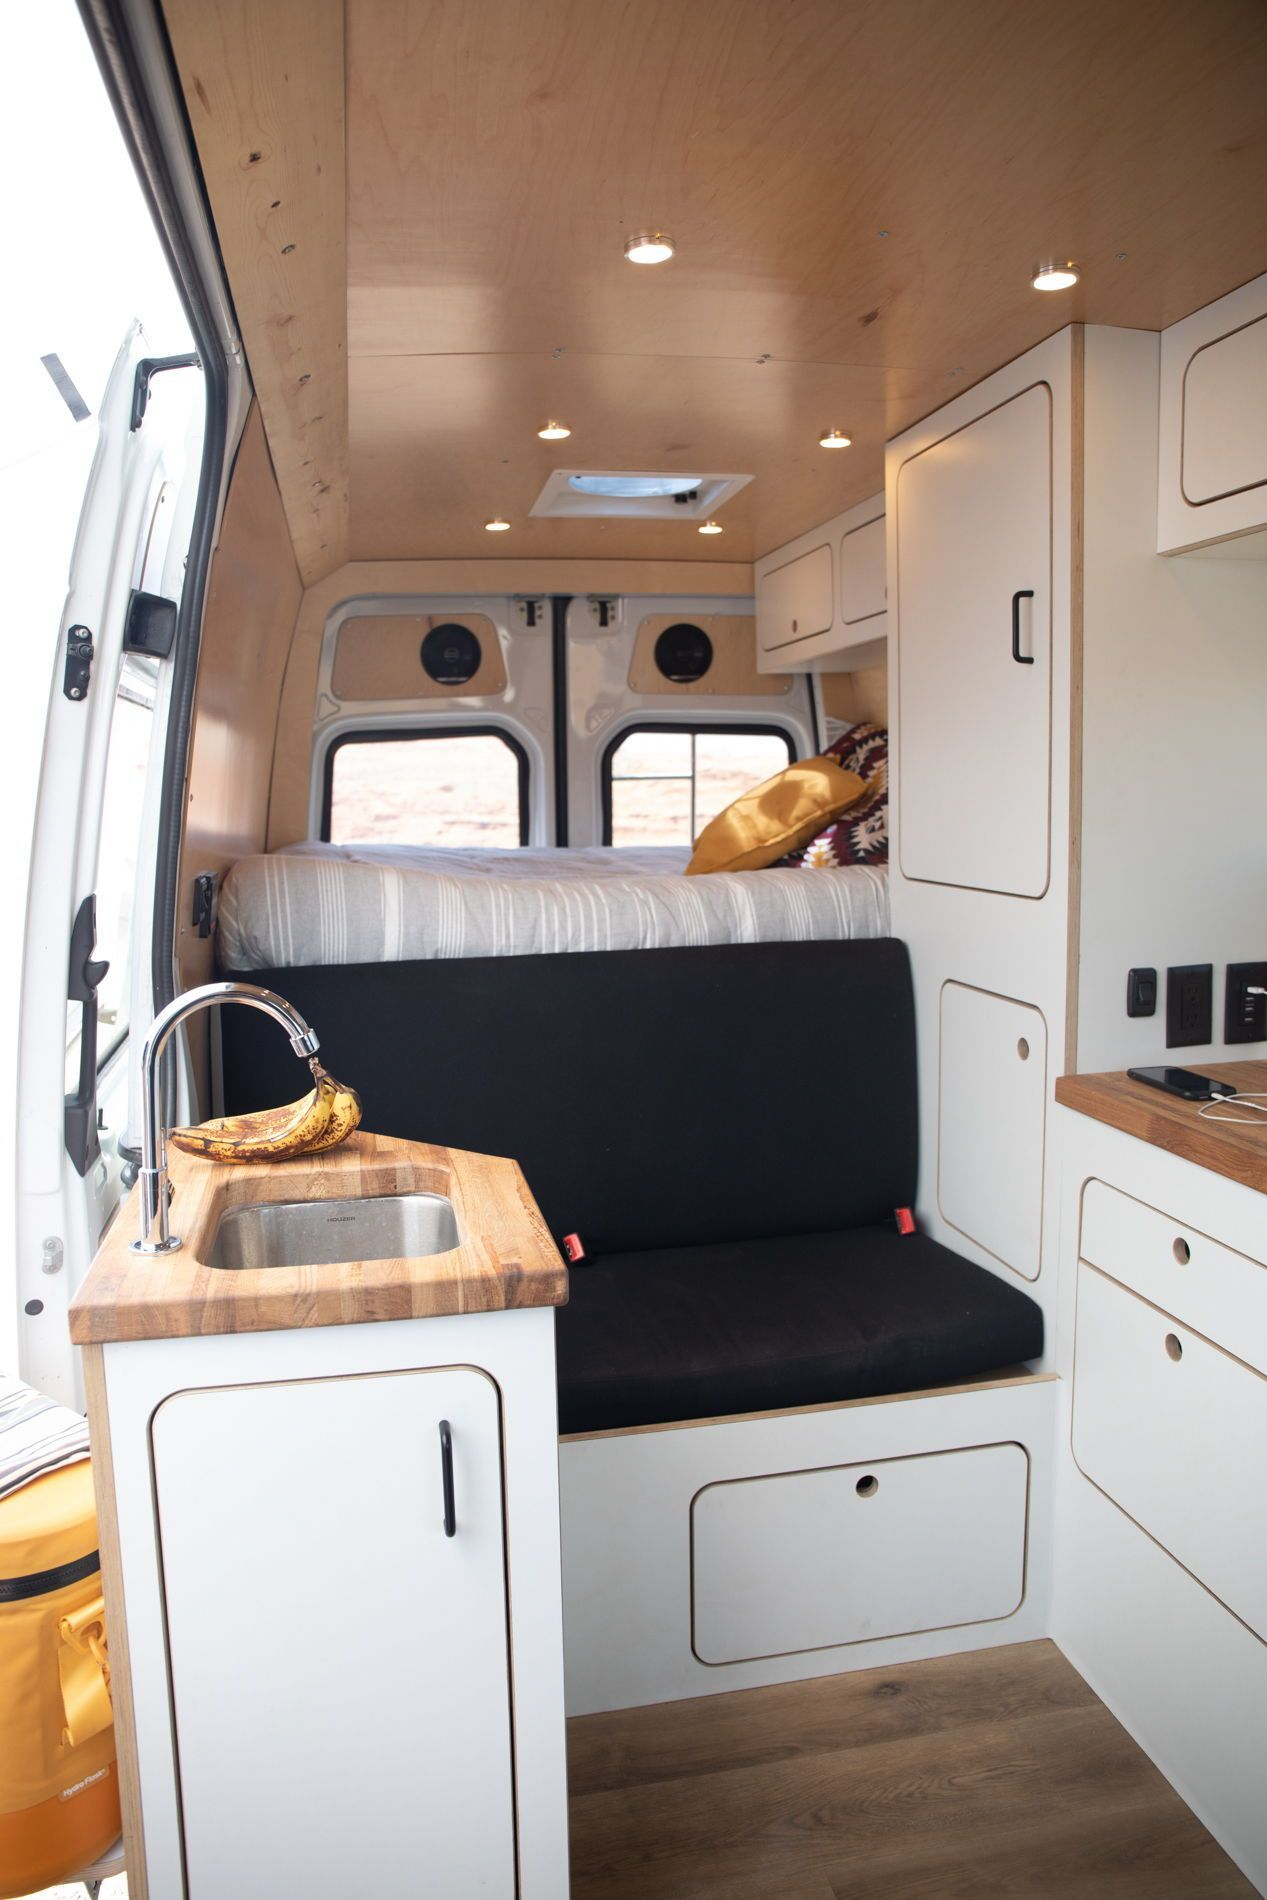 Photo of #1 RATED SPRINTER CAMPER VAN RENTAL AND CONVERSION COMPANY IN SAN DIEGO COUNTY.